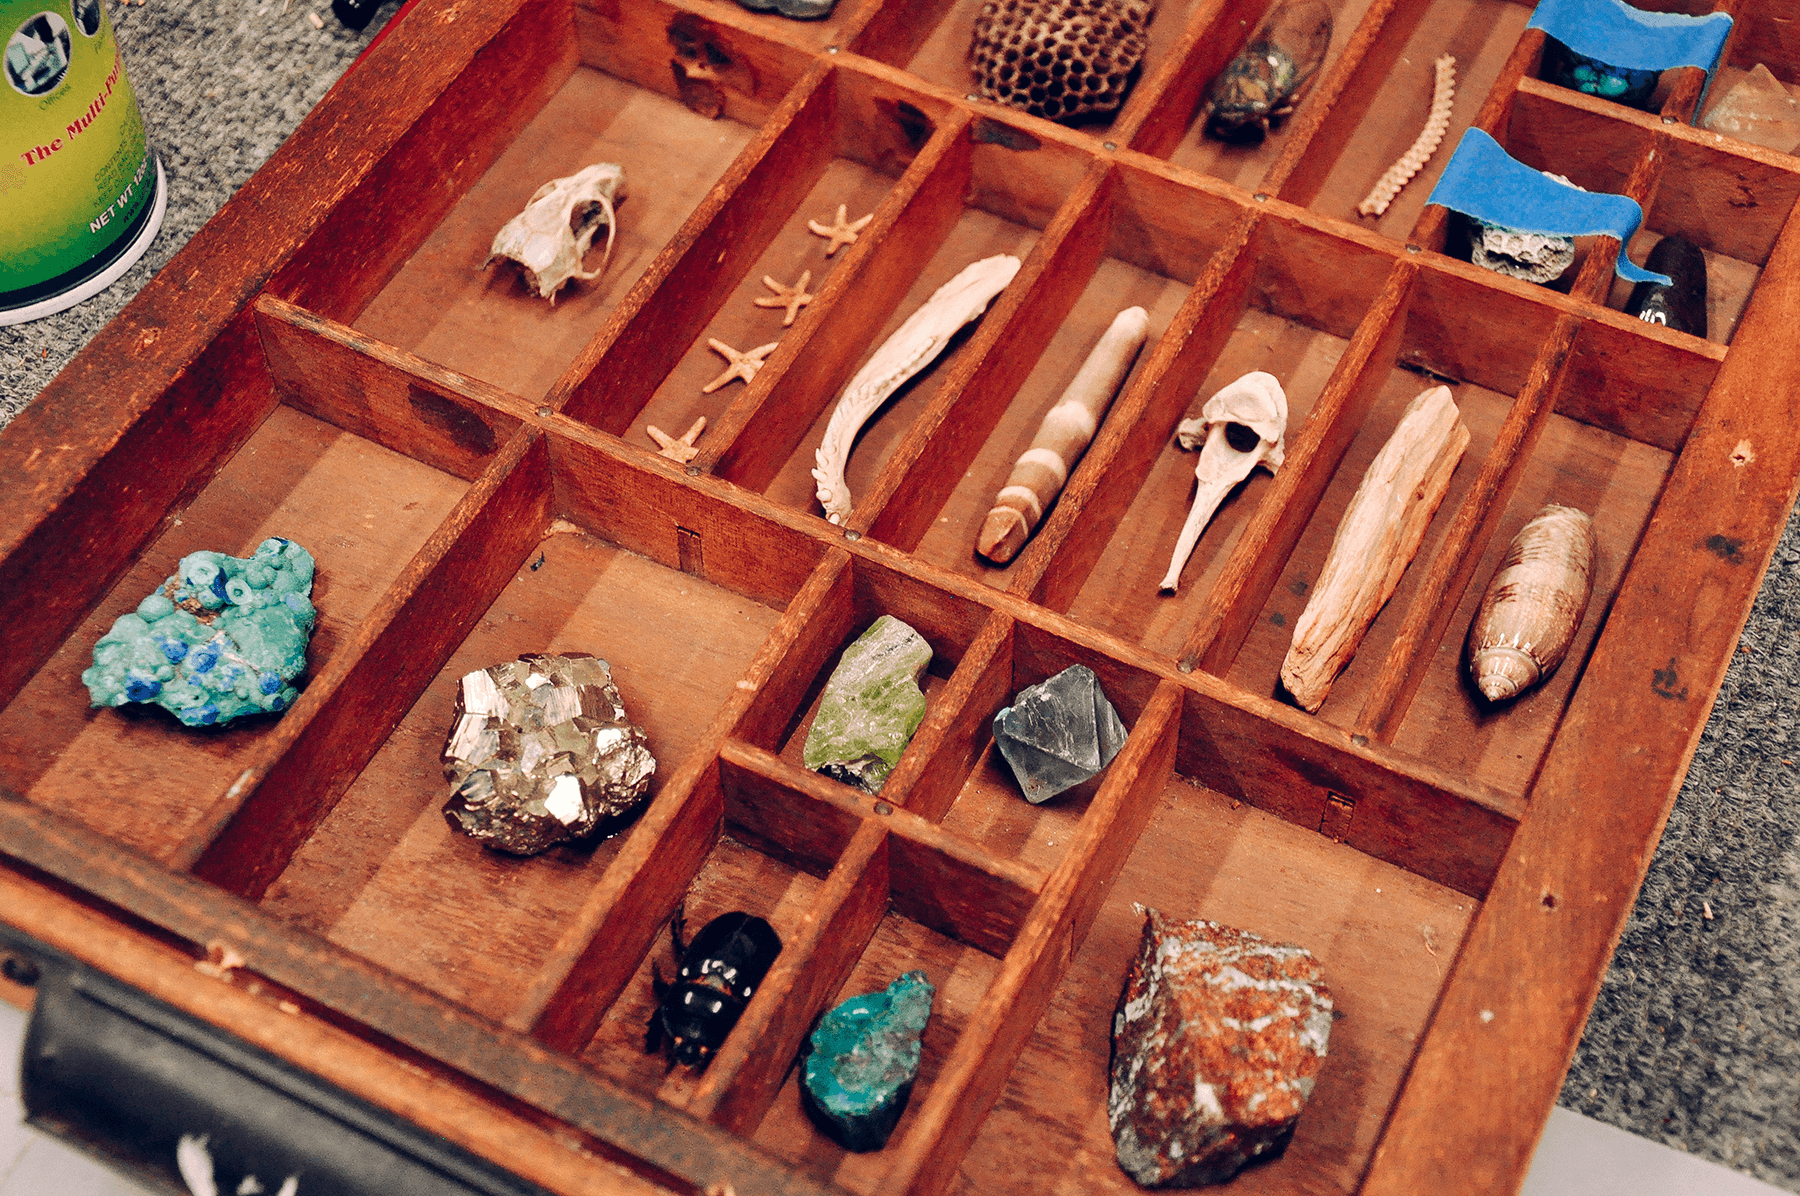 Details from Crystal's exquisite collection foraged artifacts.